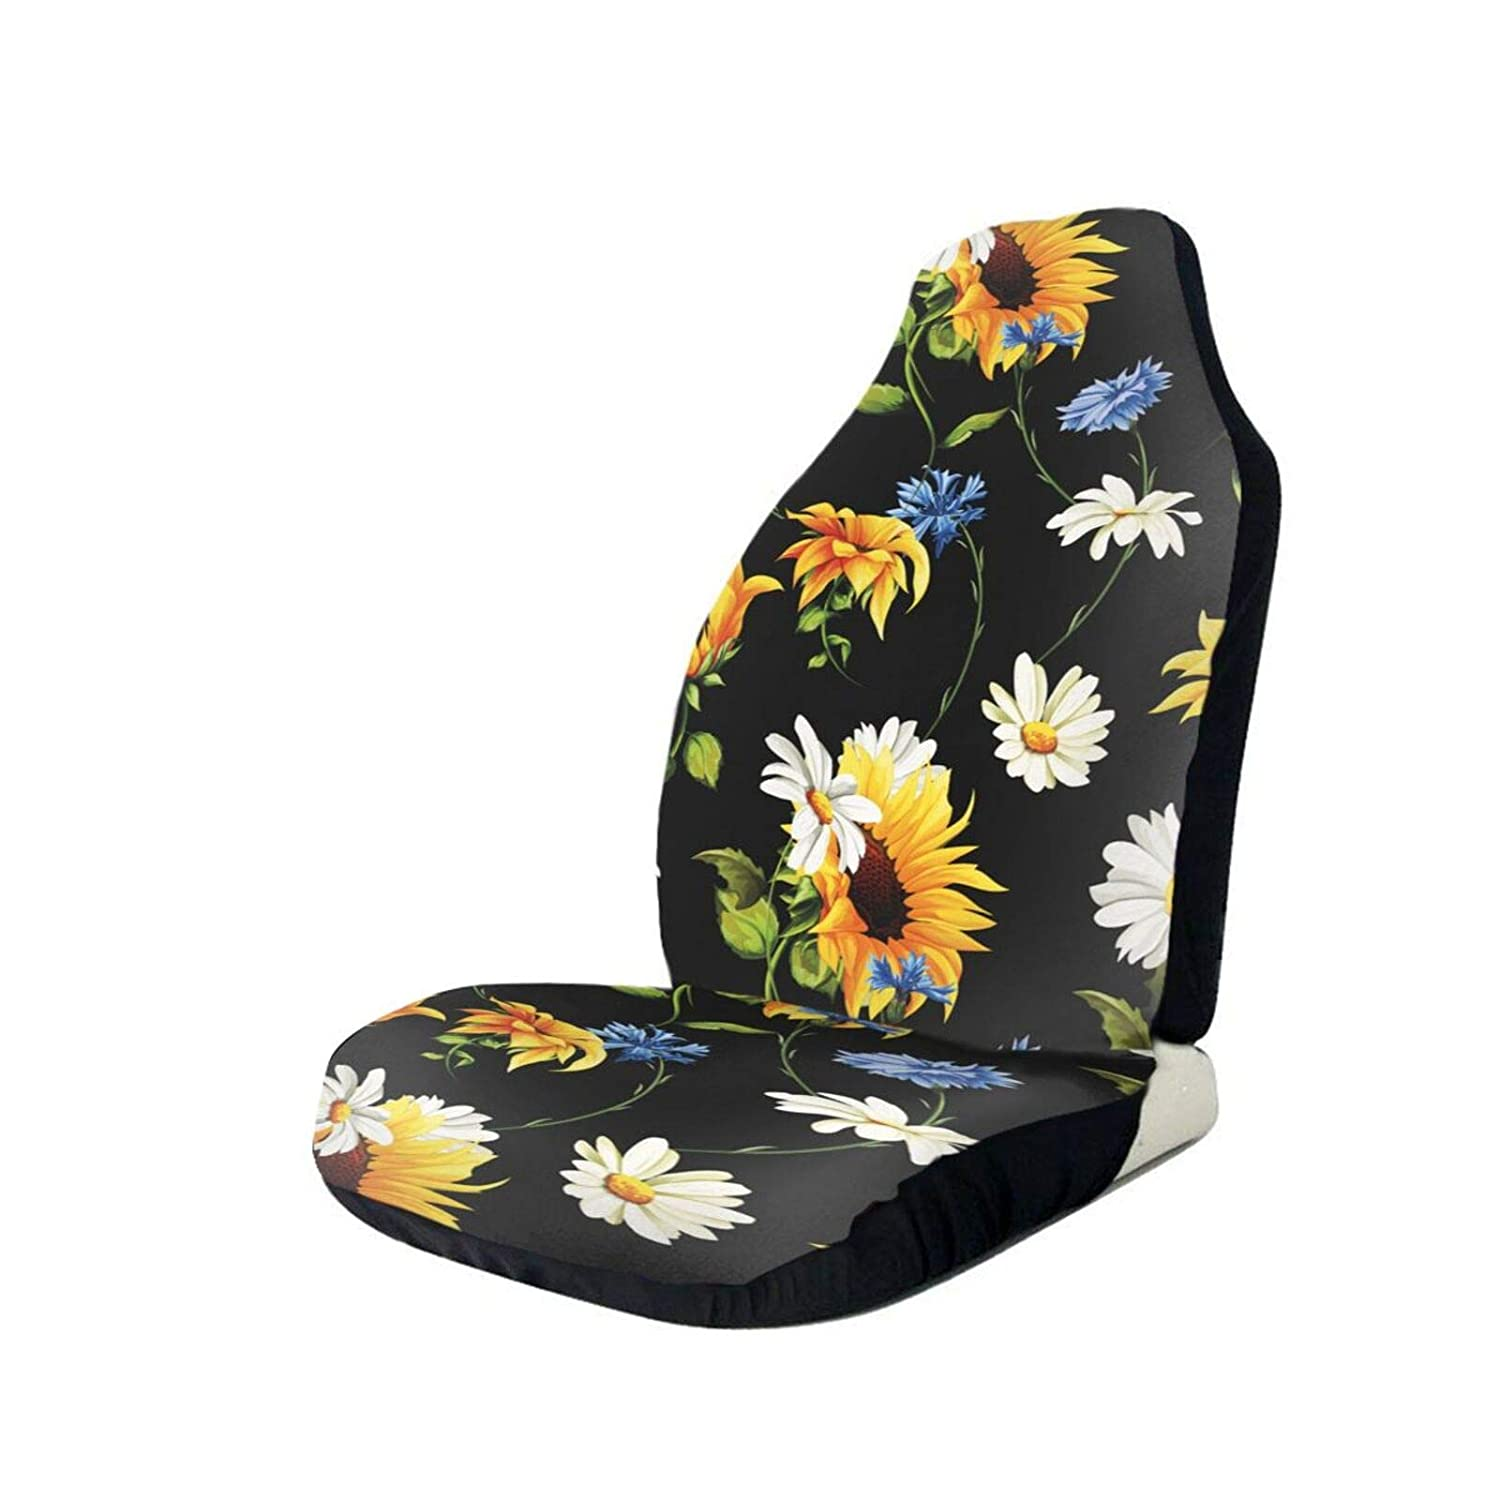 Sunflowers Chamomile Printed Car Seat Covers Front Seats Fit Most Car, Truck, SUV Or Van